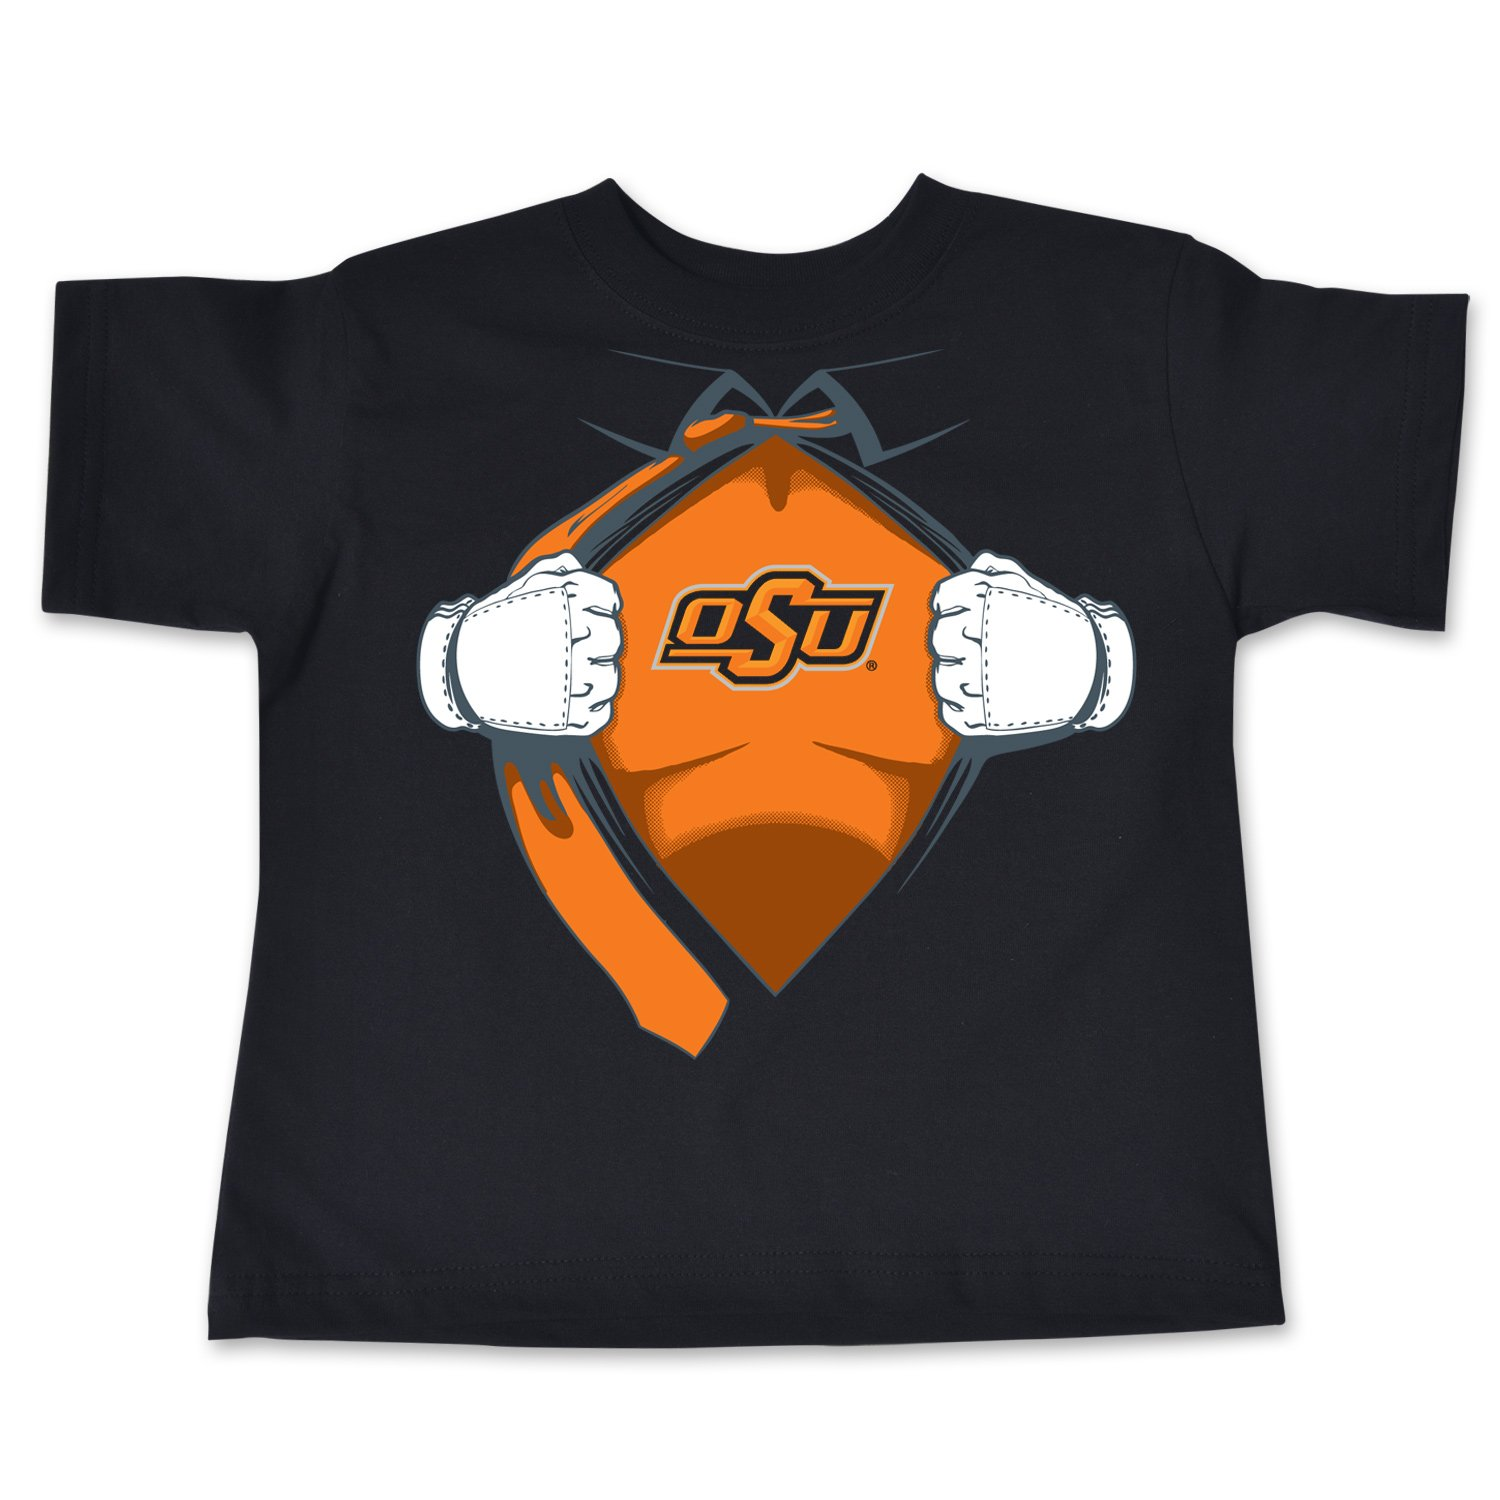 Black 4 College Kids NCAA Oklahoma State Cowboys Children Short Sleeve Toddler Tee Superhero Sports Fan T Shirt